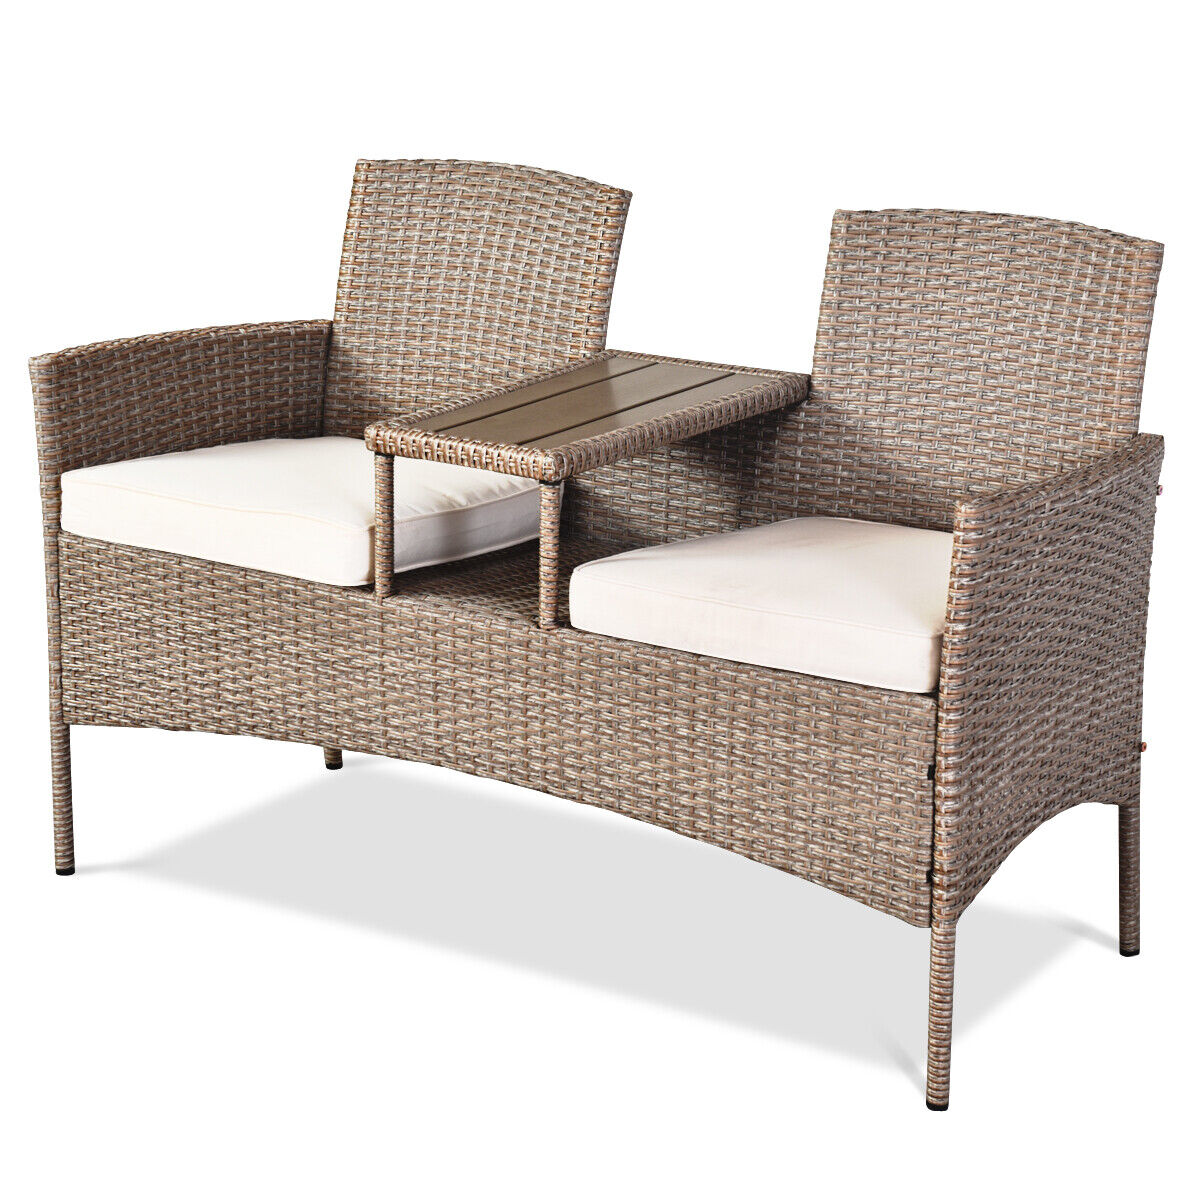 Garden Furniture - Outdoor Garden Furniture 2-Seater Rattan Chair Middle Tea Table Padded Cushions